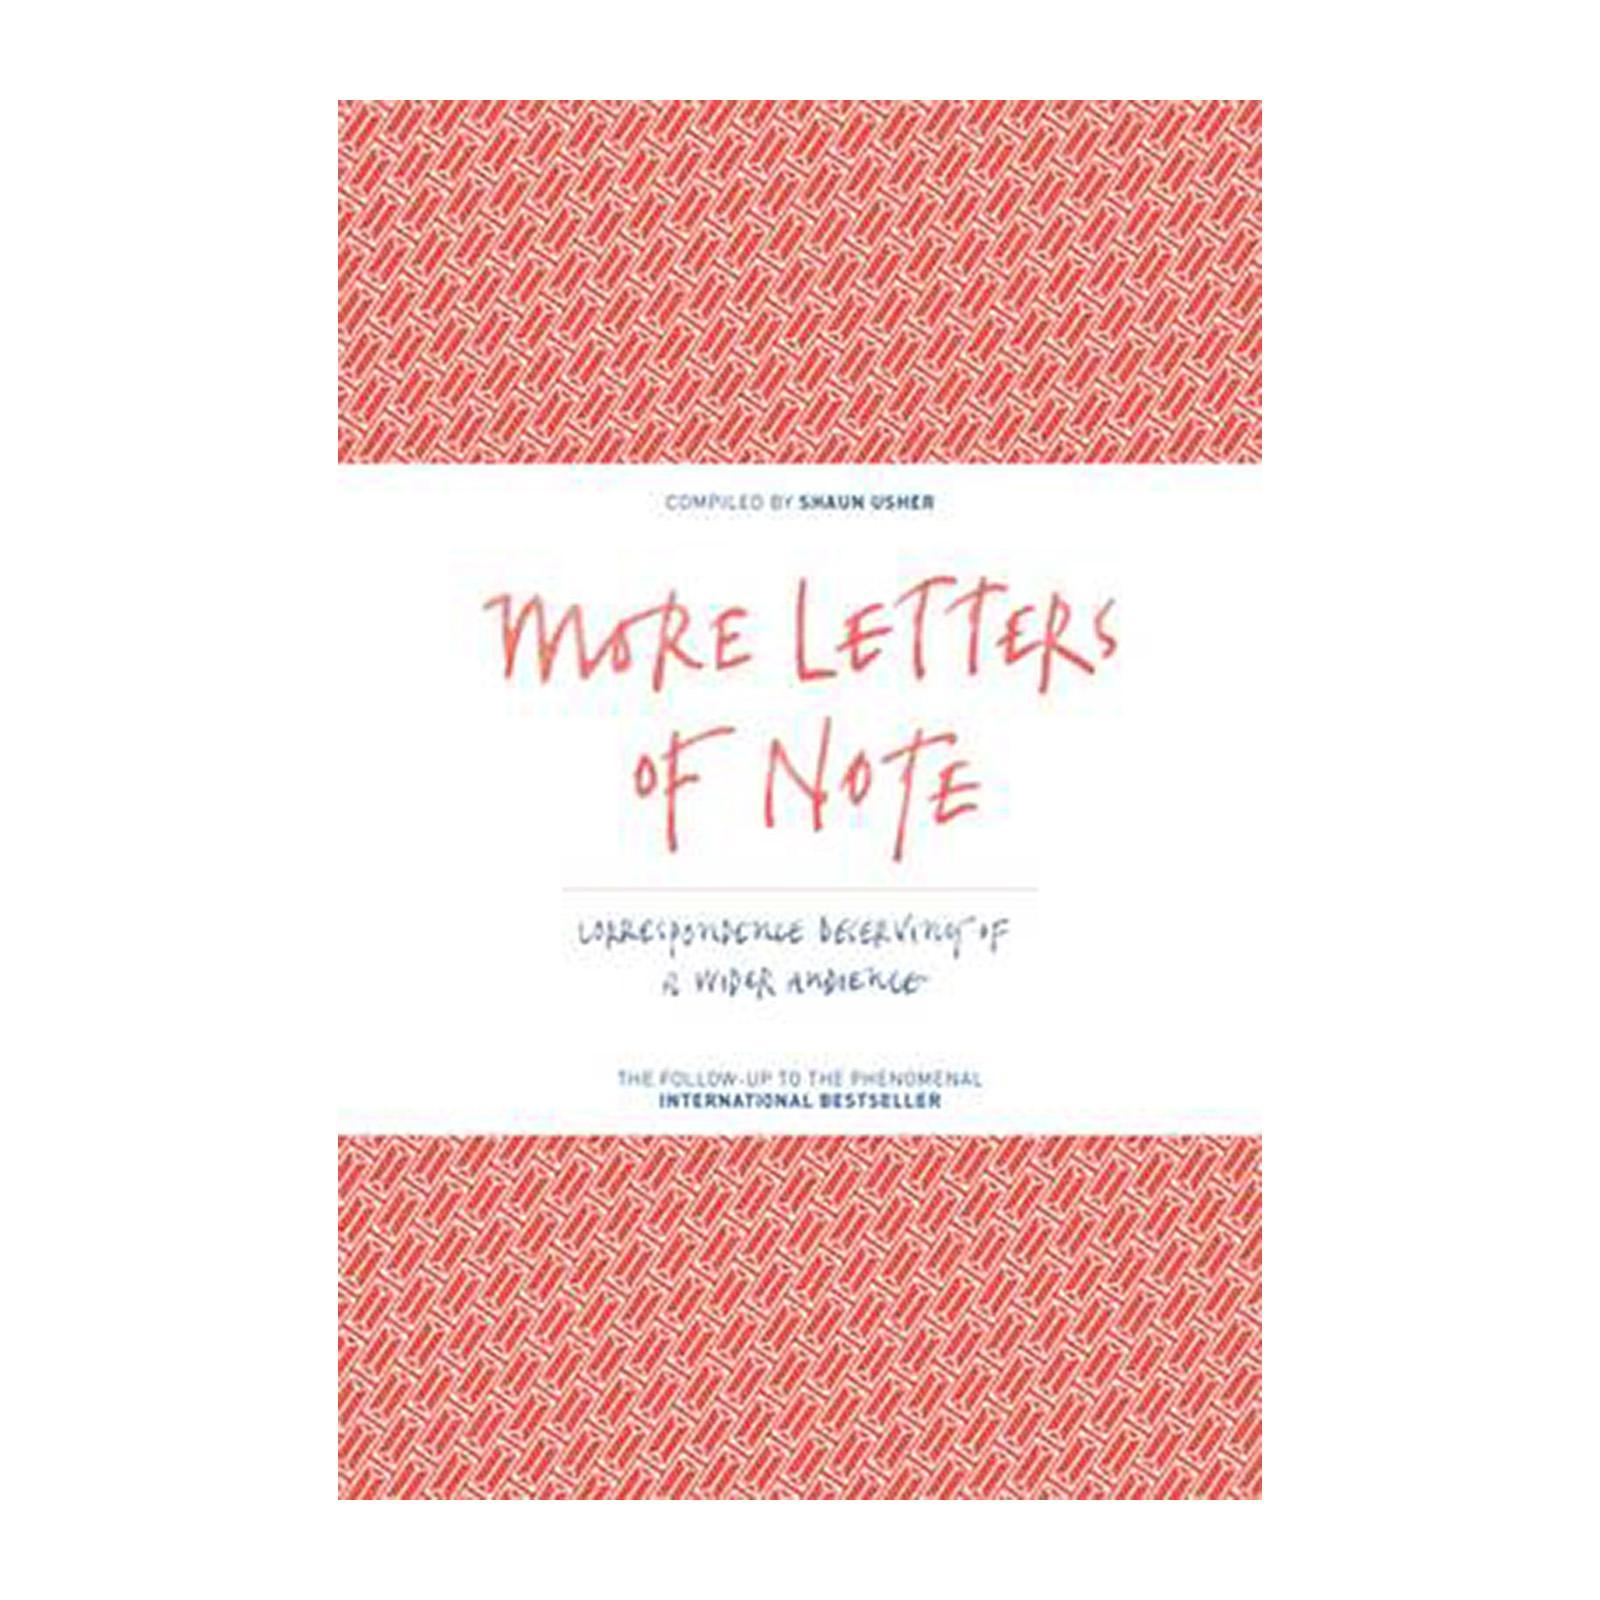 More Letters Of Note: Correspondence Deserving Of A Wider Audience (Hardcover)